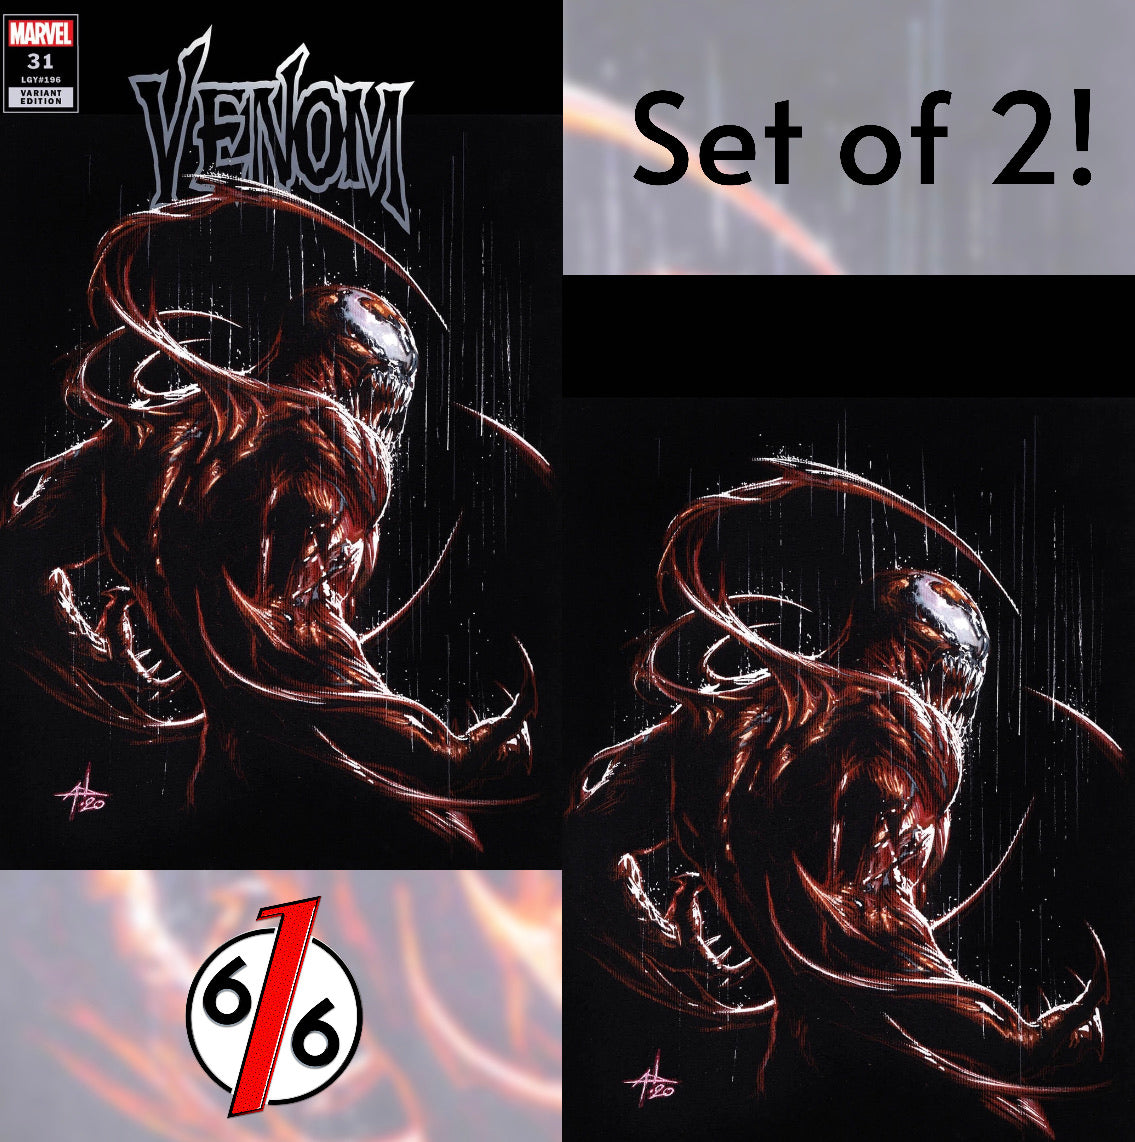 🚨🕸 VENOM #31 SET OF 2 GABRIELE DELL'OTTO Carnage Variants King In Black NM